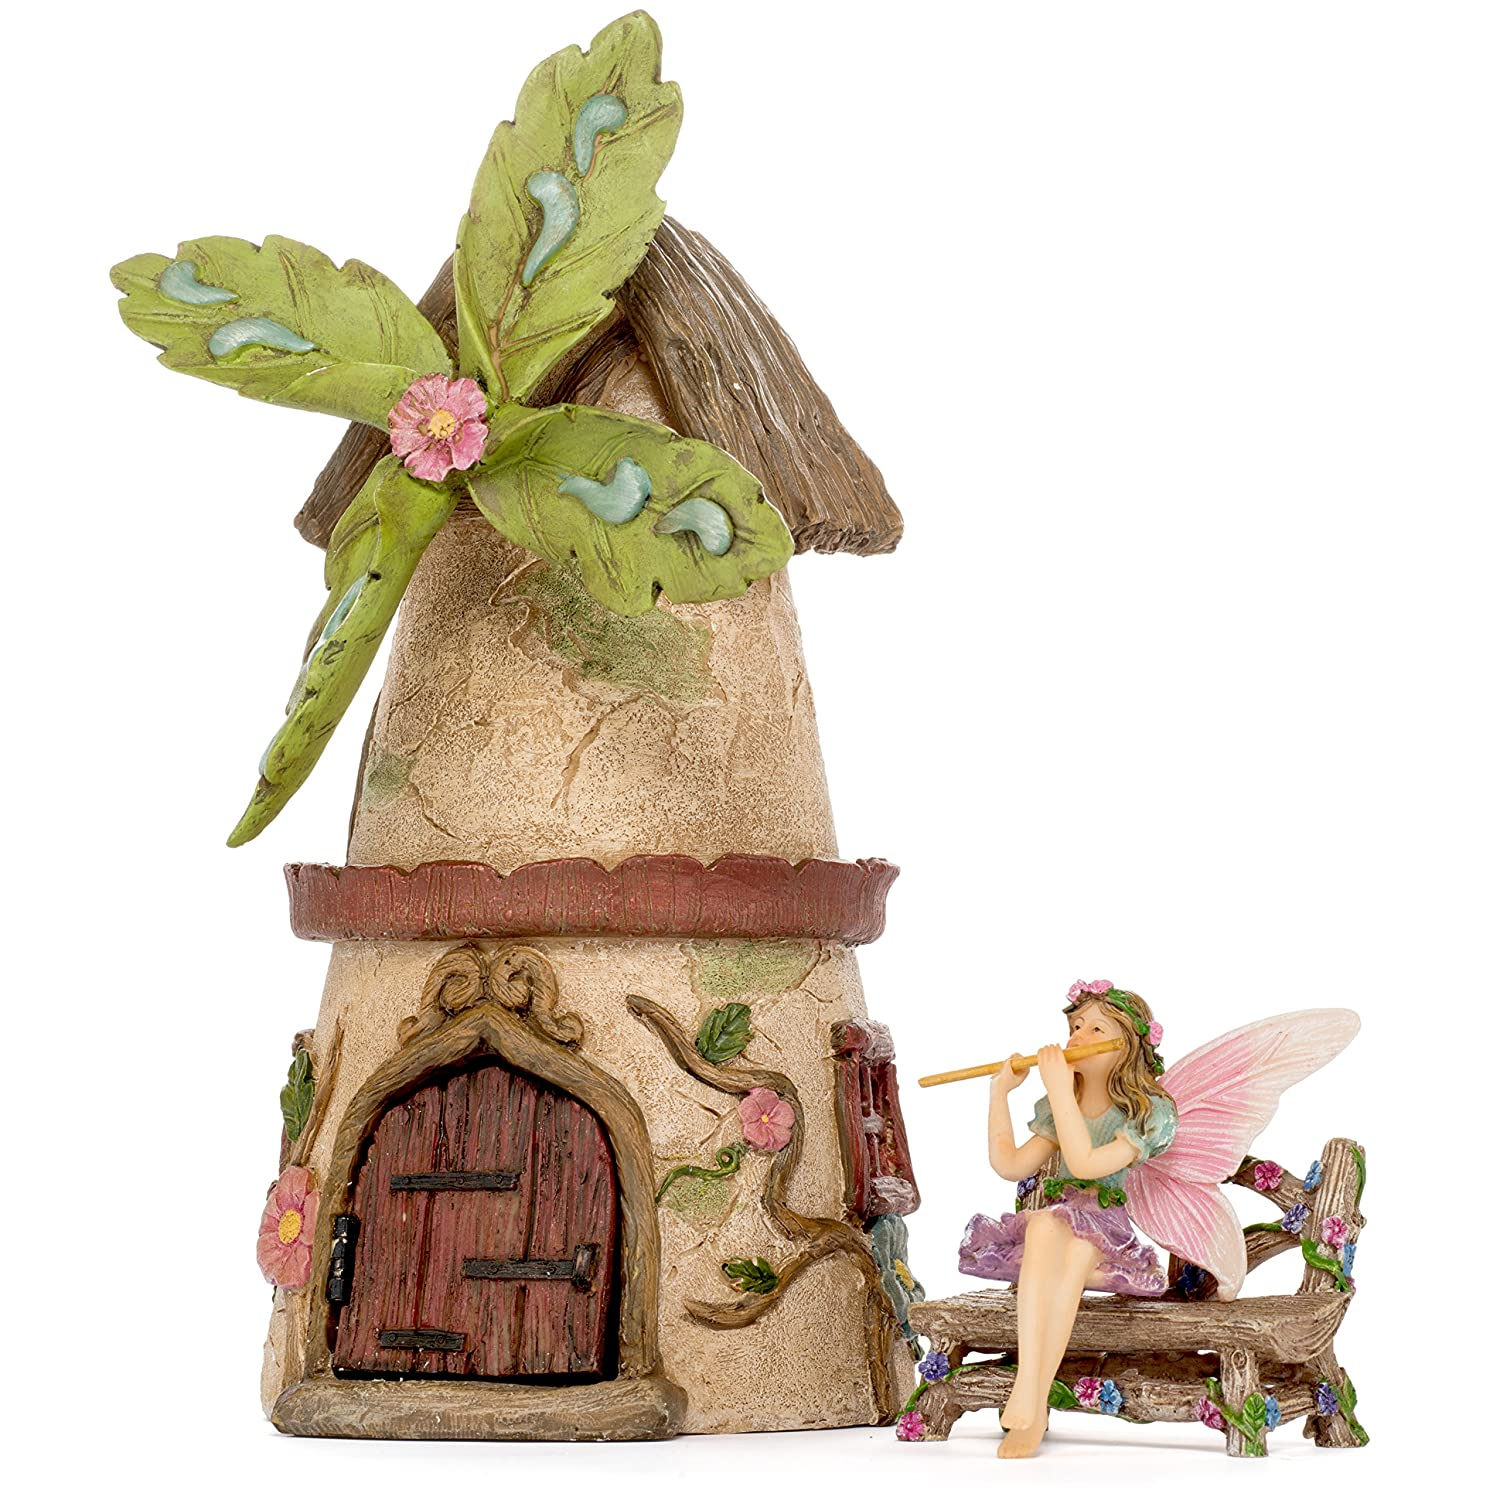 Patio Eden - Fairy Garden House Set - Hand Painted Miniature Figurine Kit - Garden Accessories